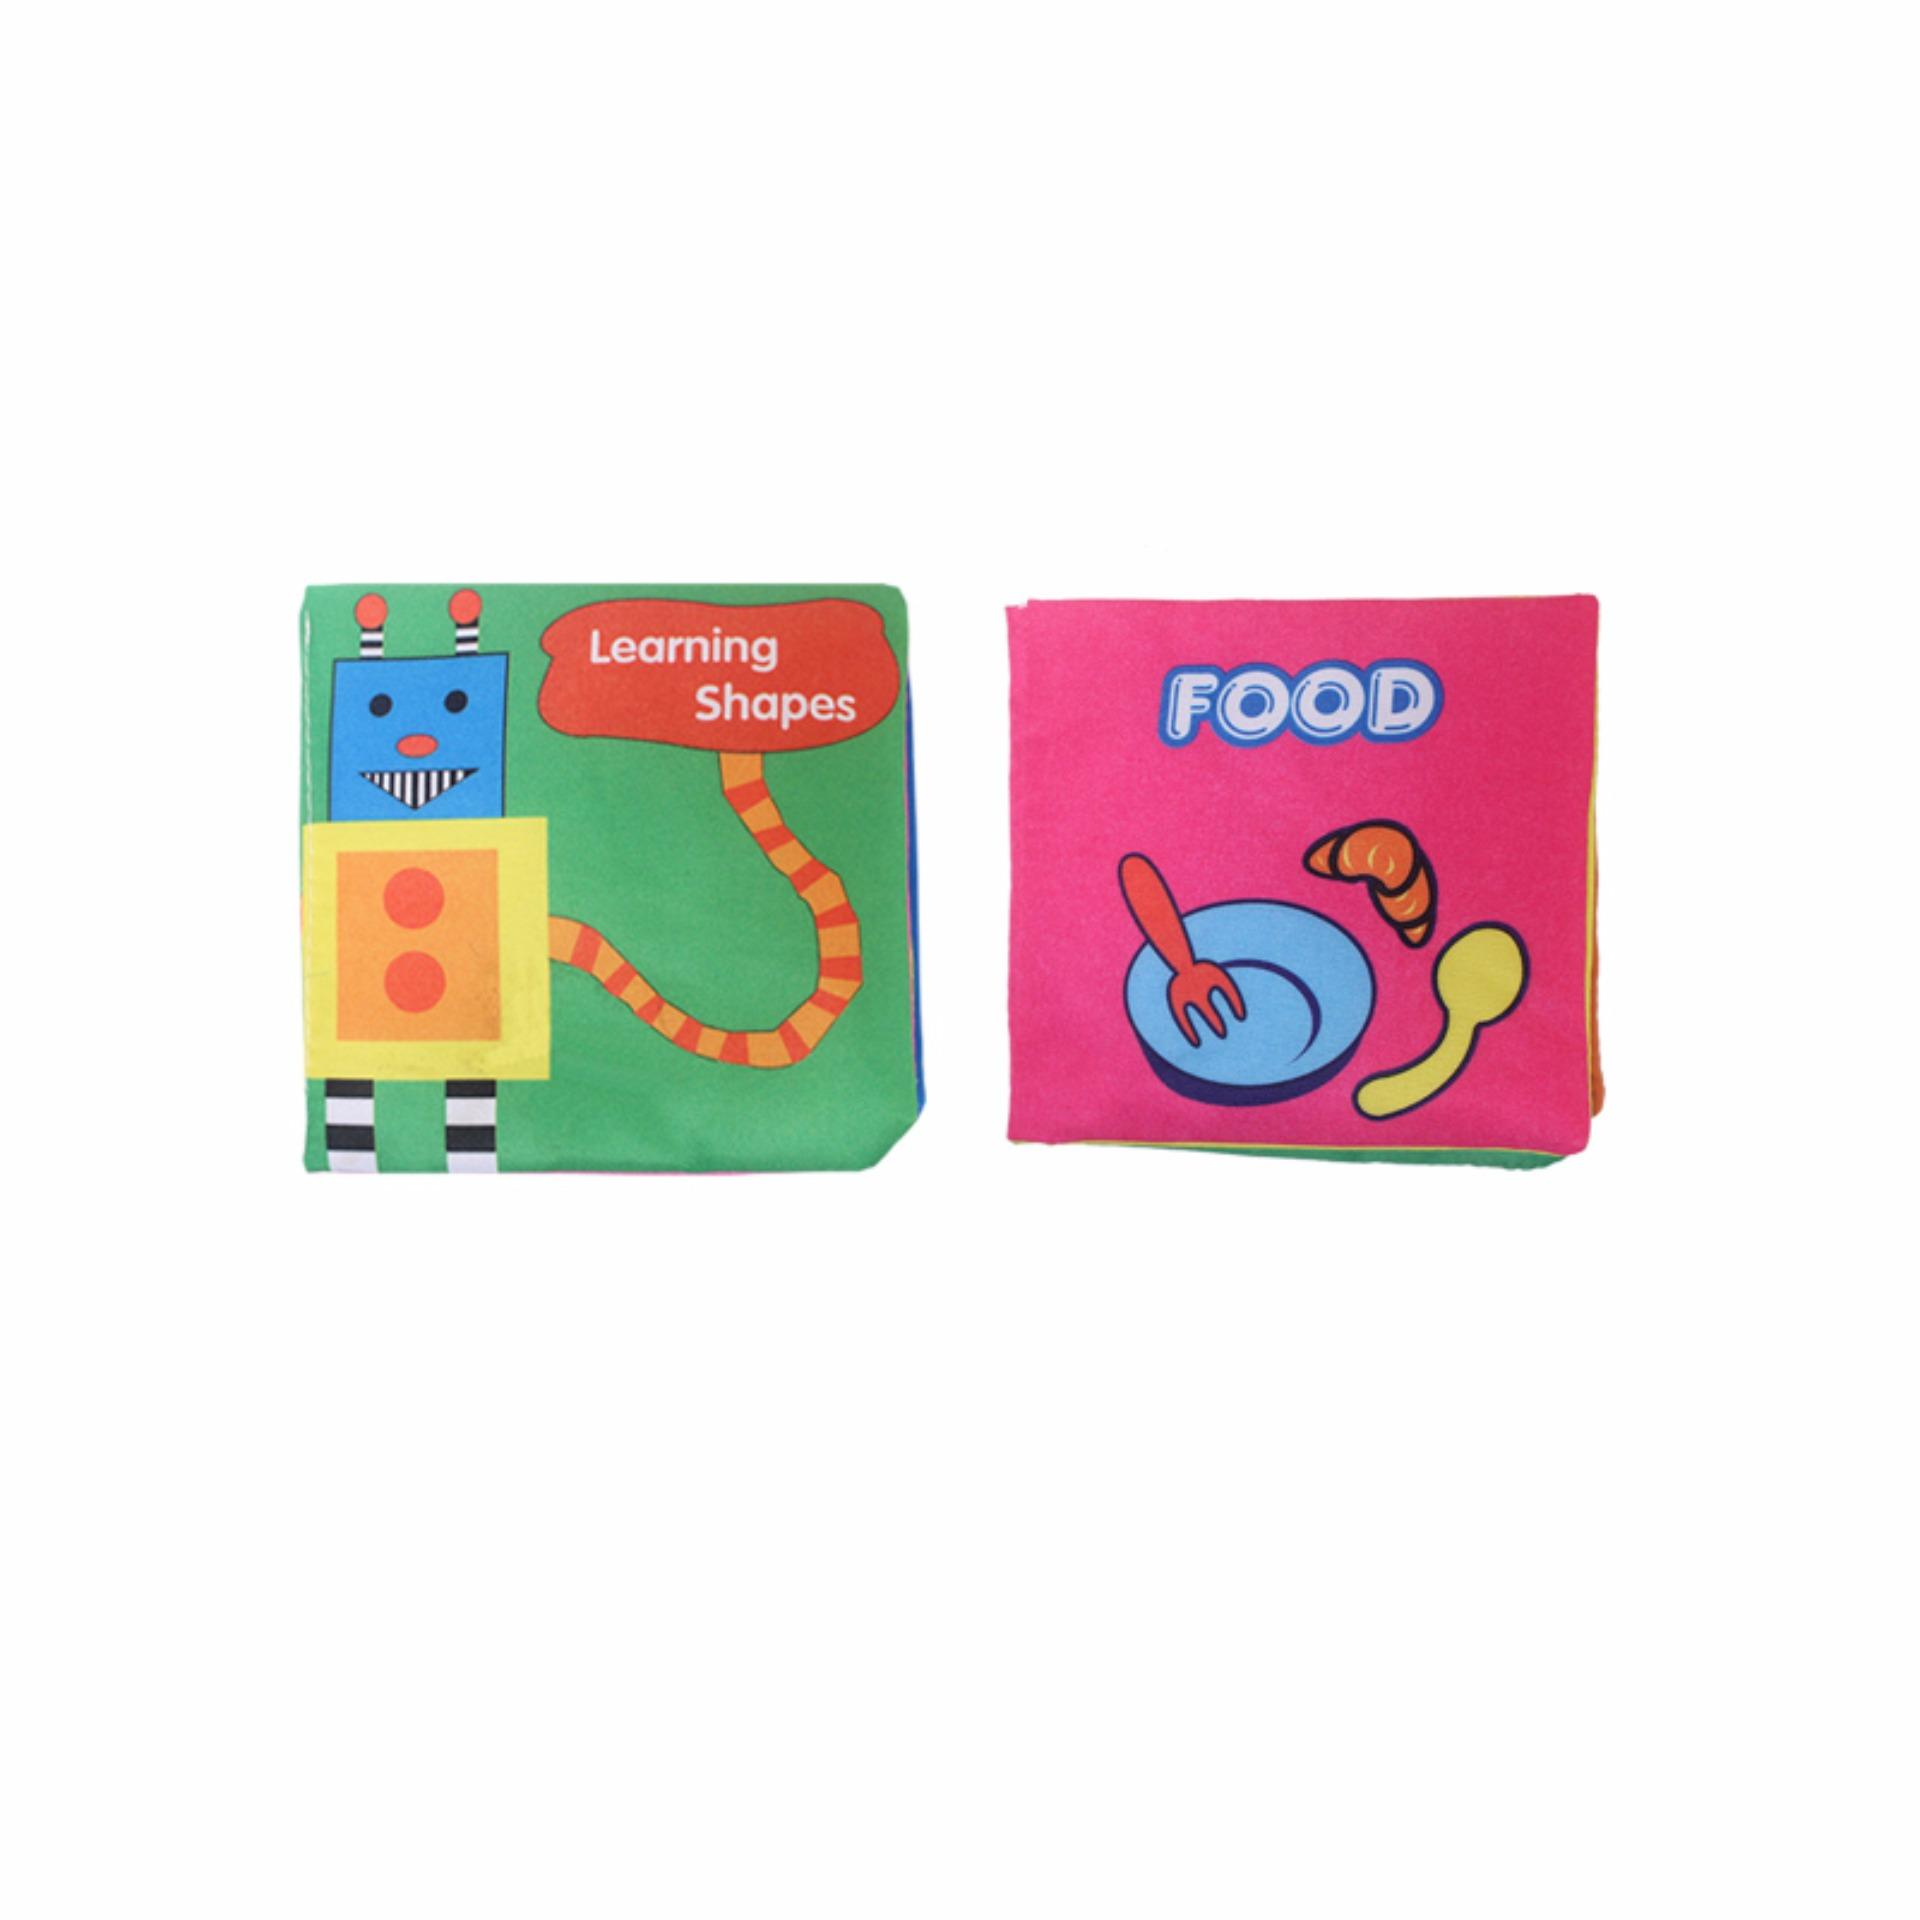 EELIC AYI-BU01 1 SET = 2 PCS SHAPES & FOOD BABY BOOK MAINAN BUKU BAYI KAIN